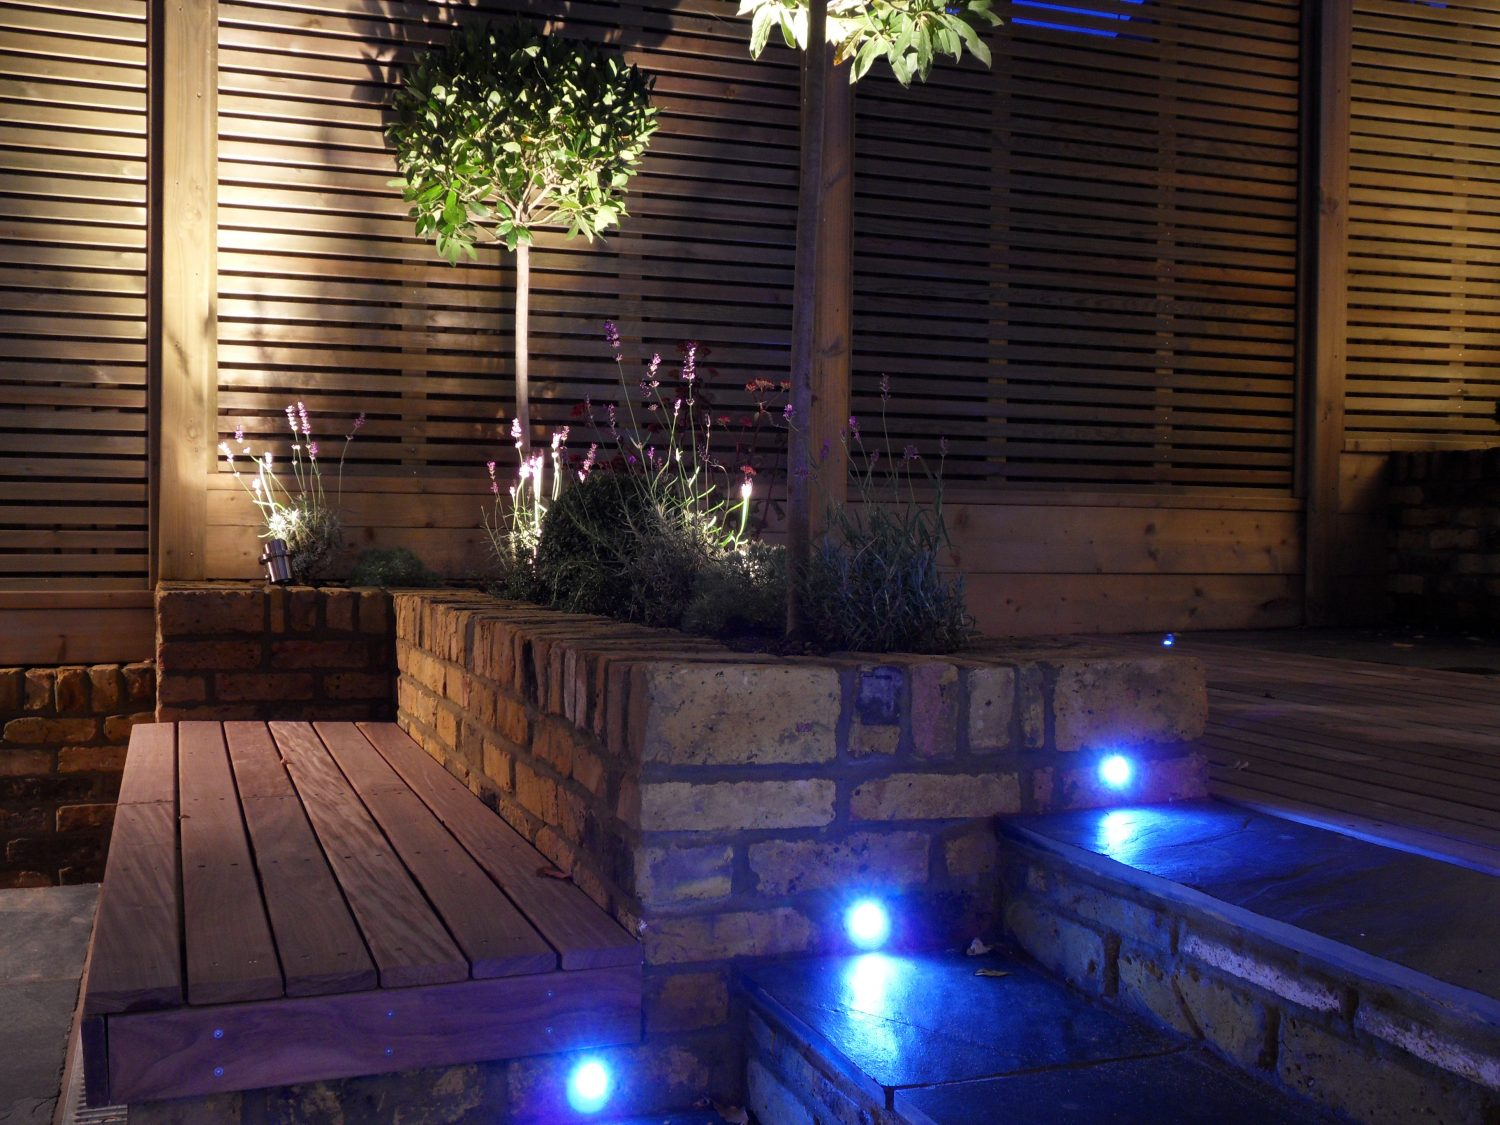 Garden lighting and electrical systems